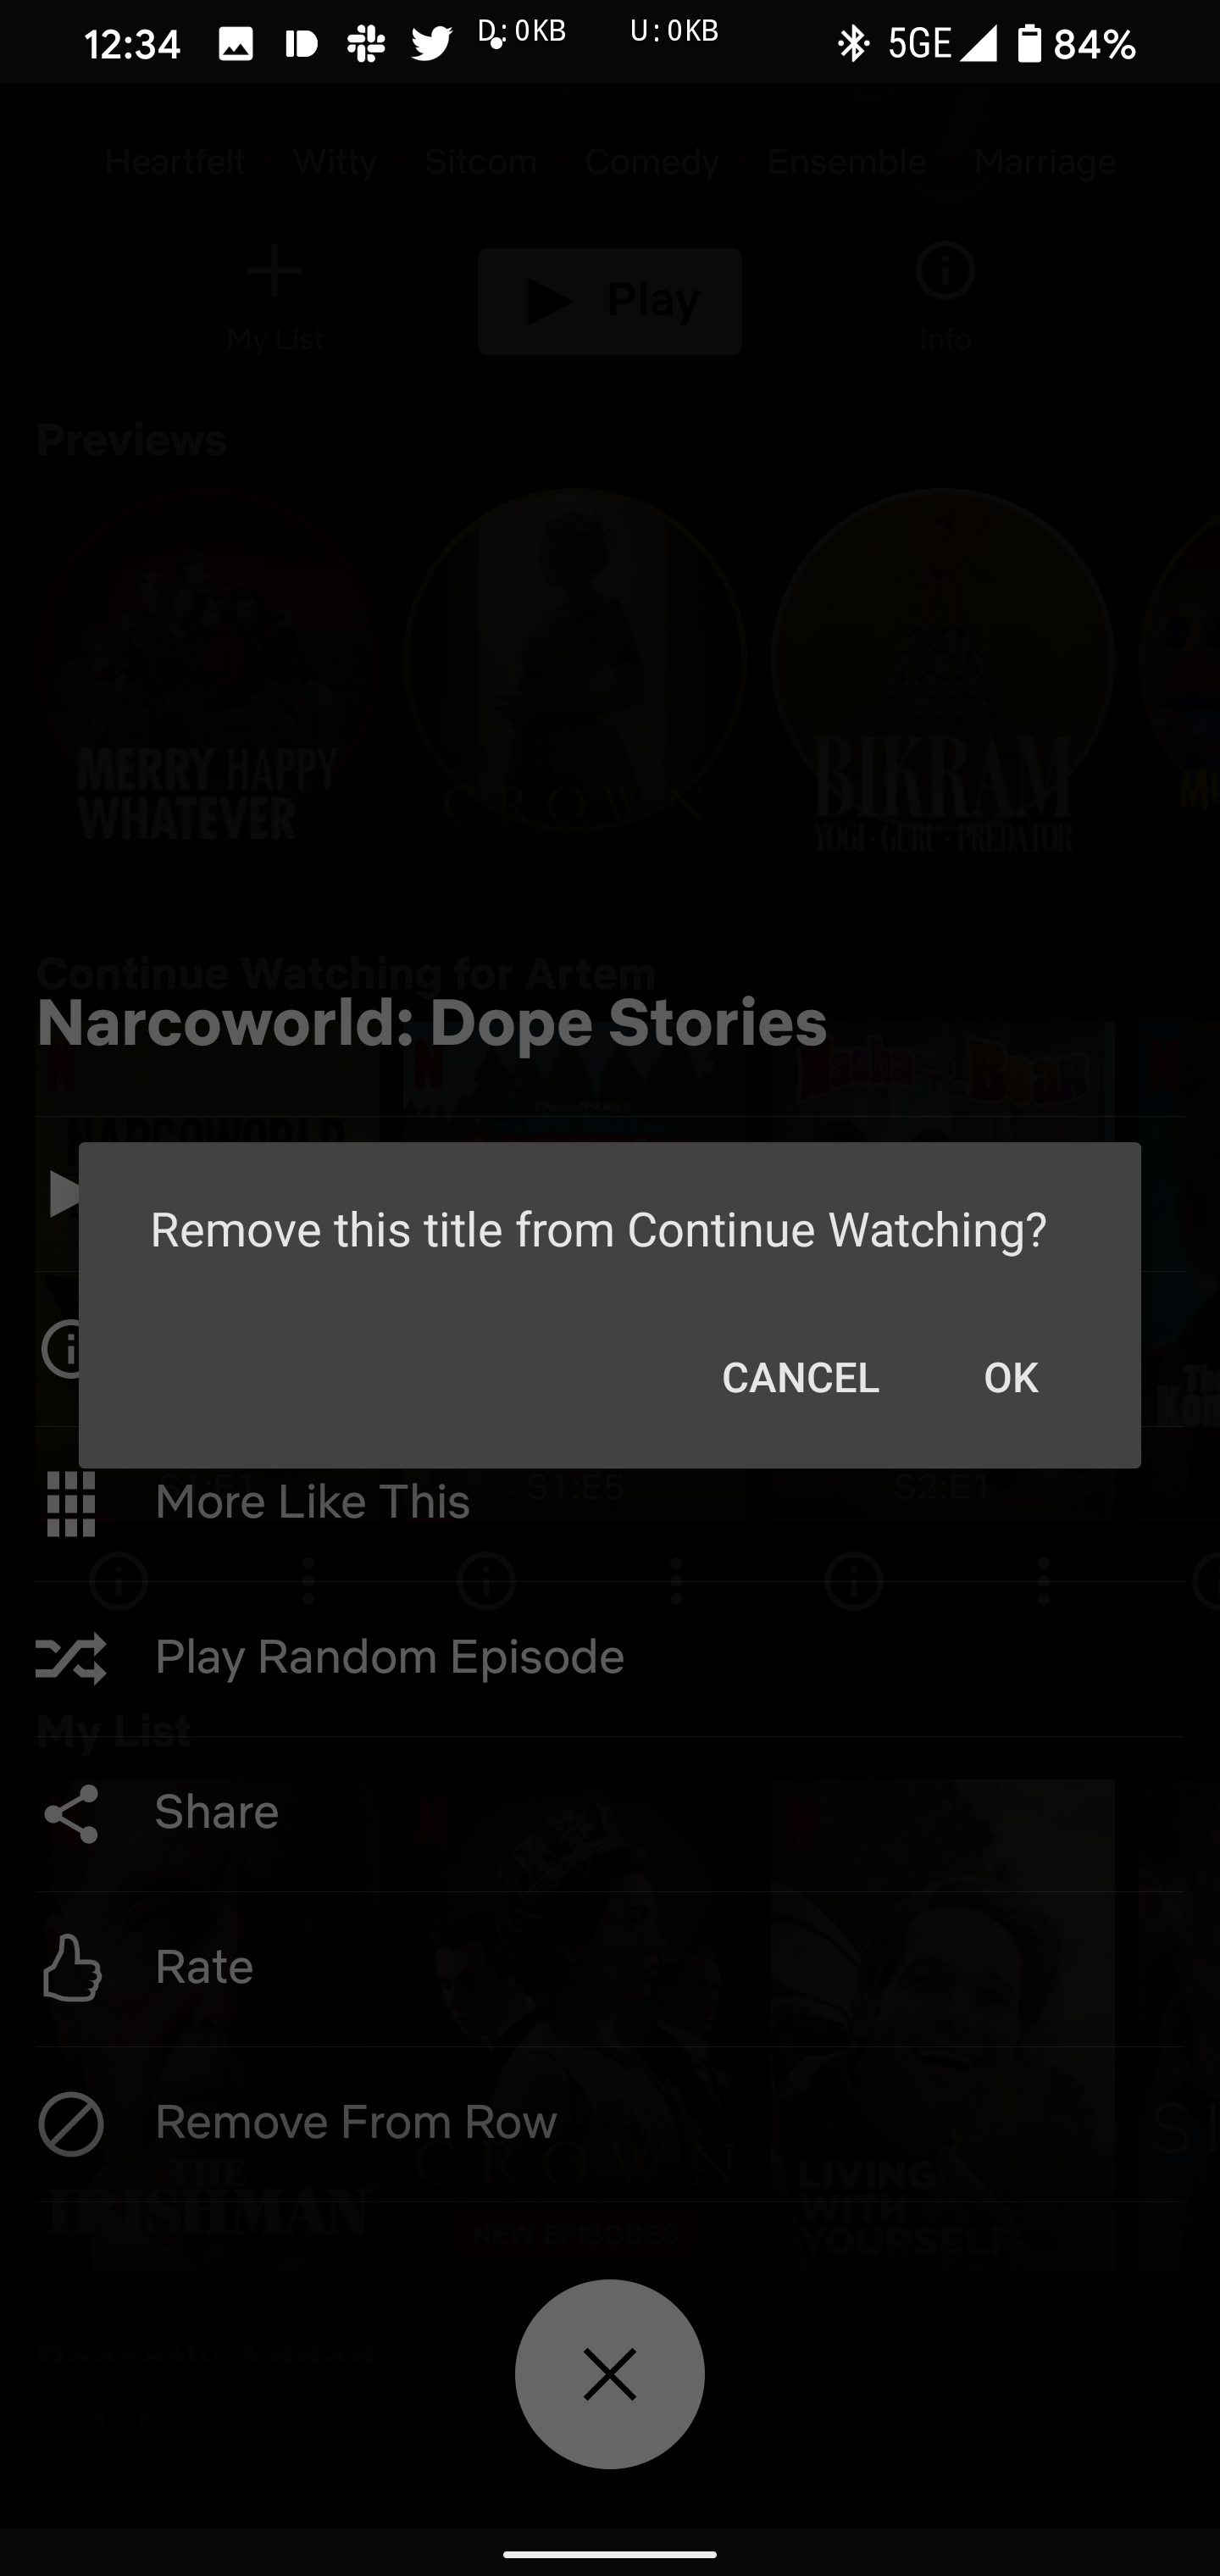 Netflix Tests New Menu W Shuffle Button More On Android 9to5google